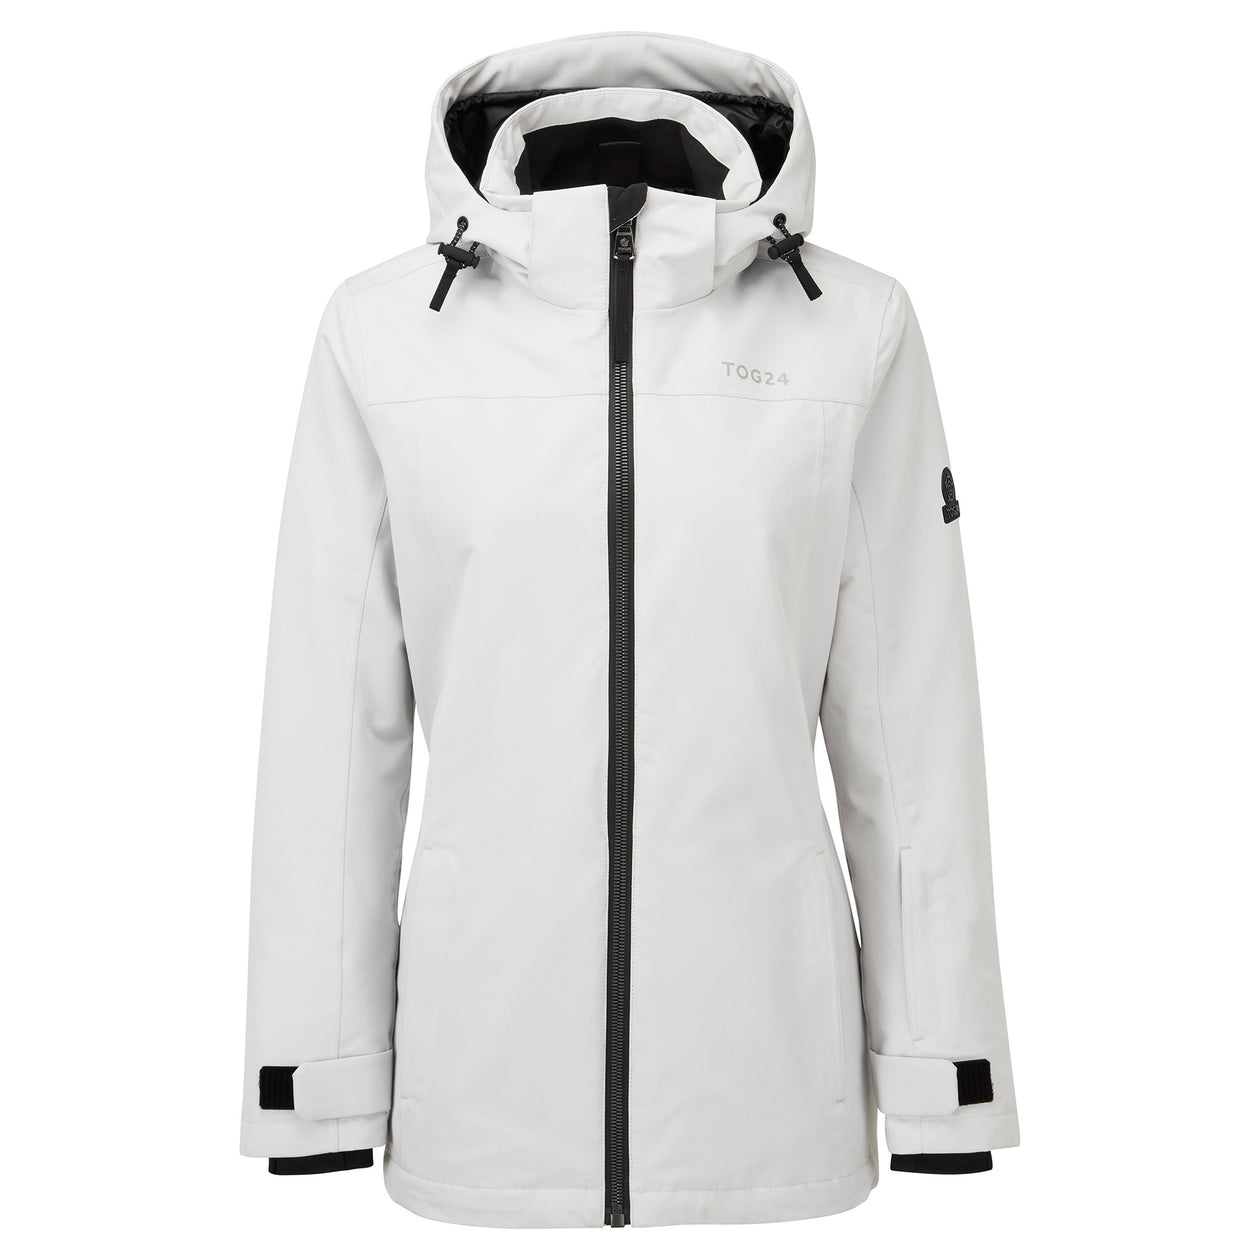 Cawood Womens Ski Jacket - Ice Grey image 4